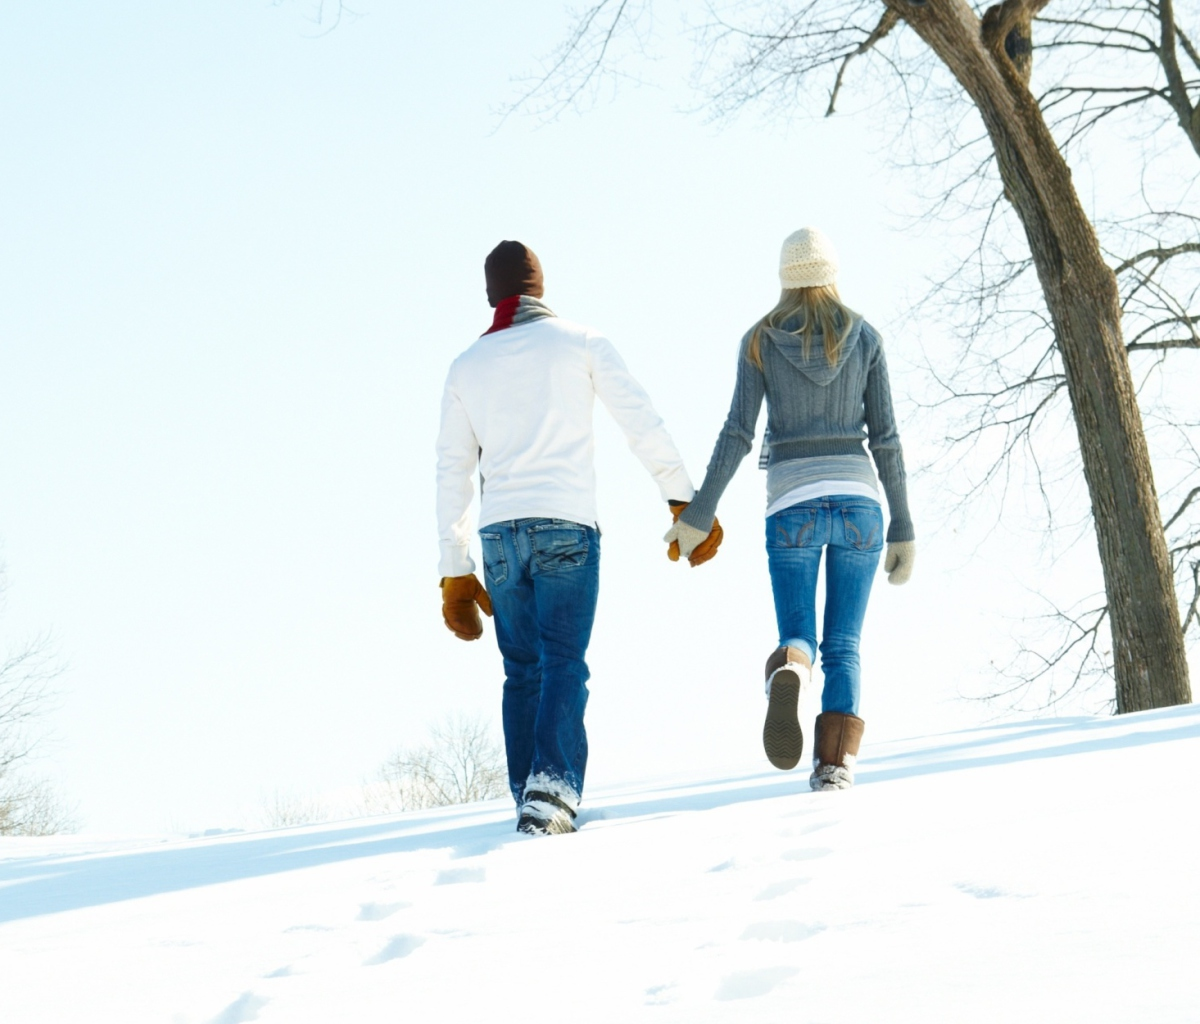 Romantic Walk Through The Snow screenshot #1 1200x1024